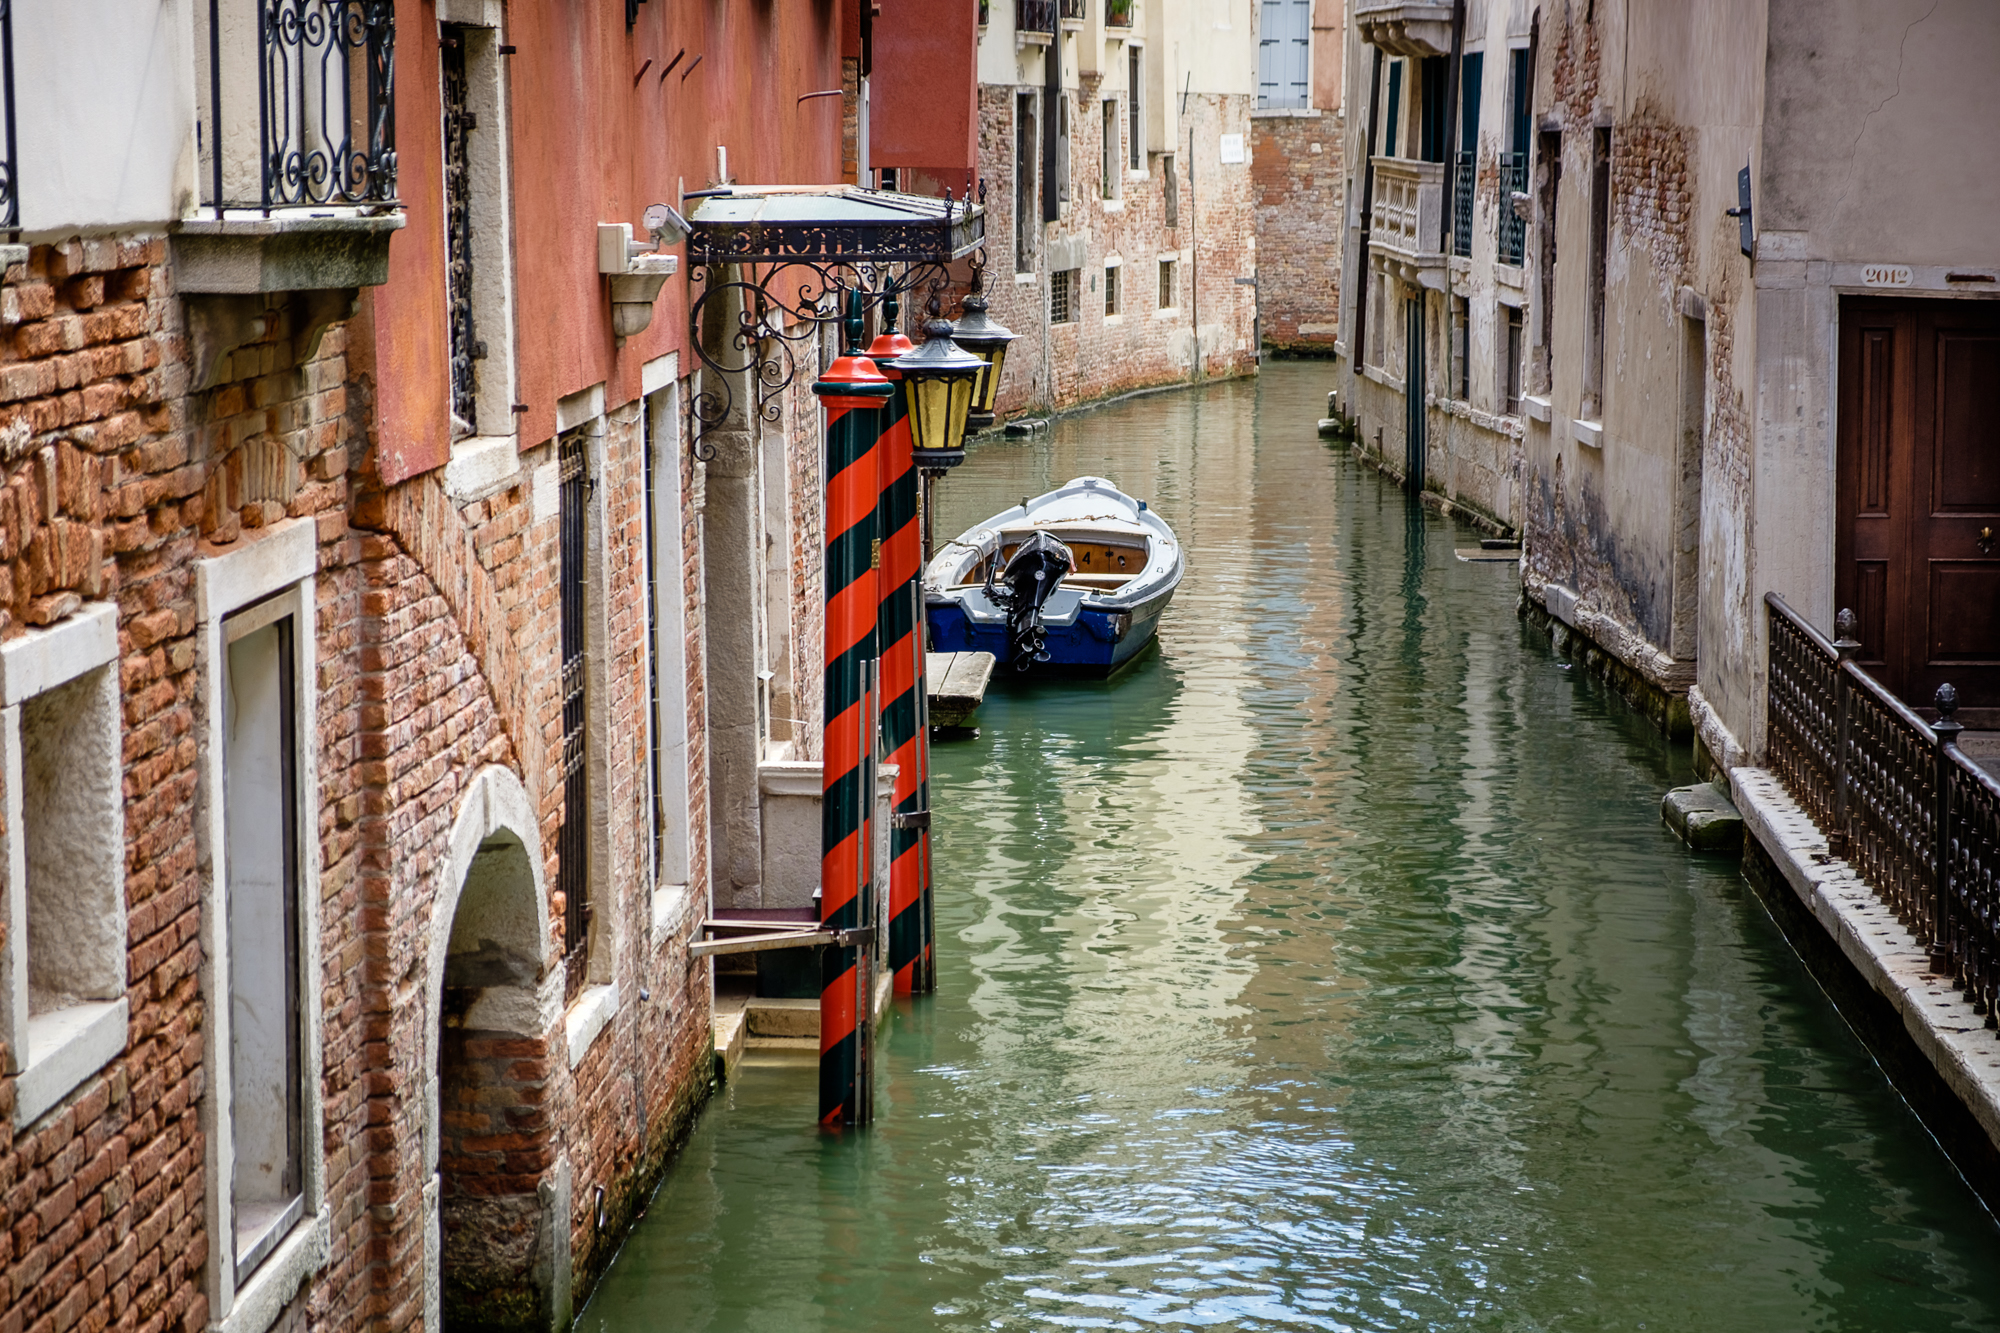 Photo of a canal in Venice taken by Trevor Sherwin